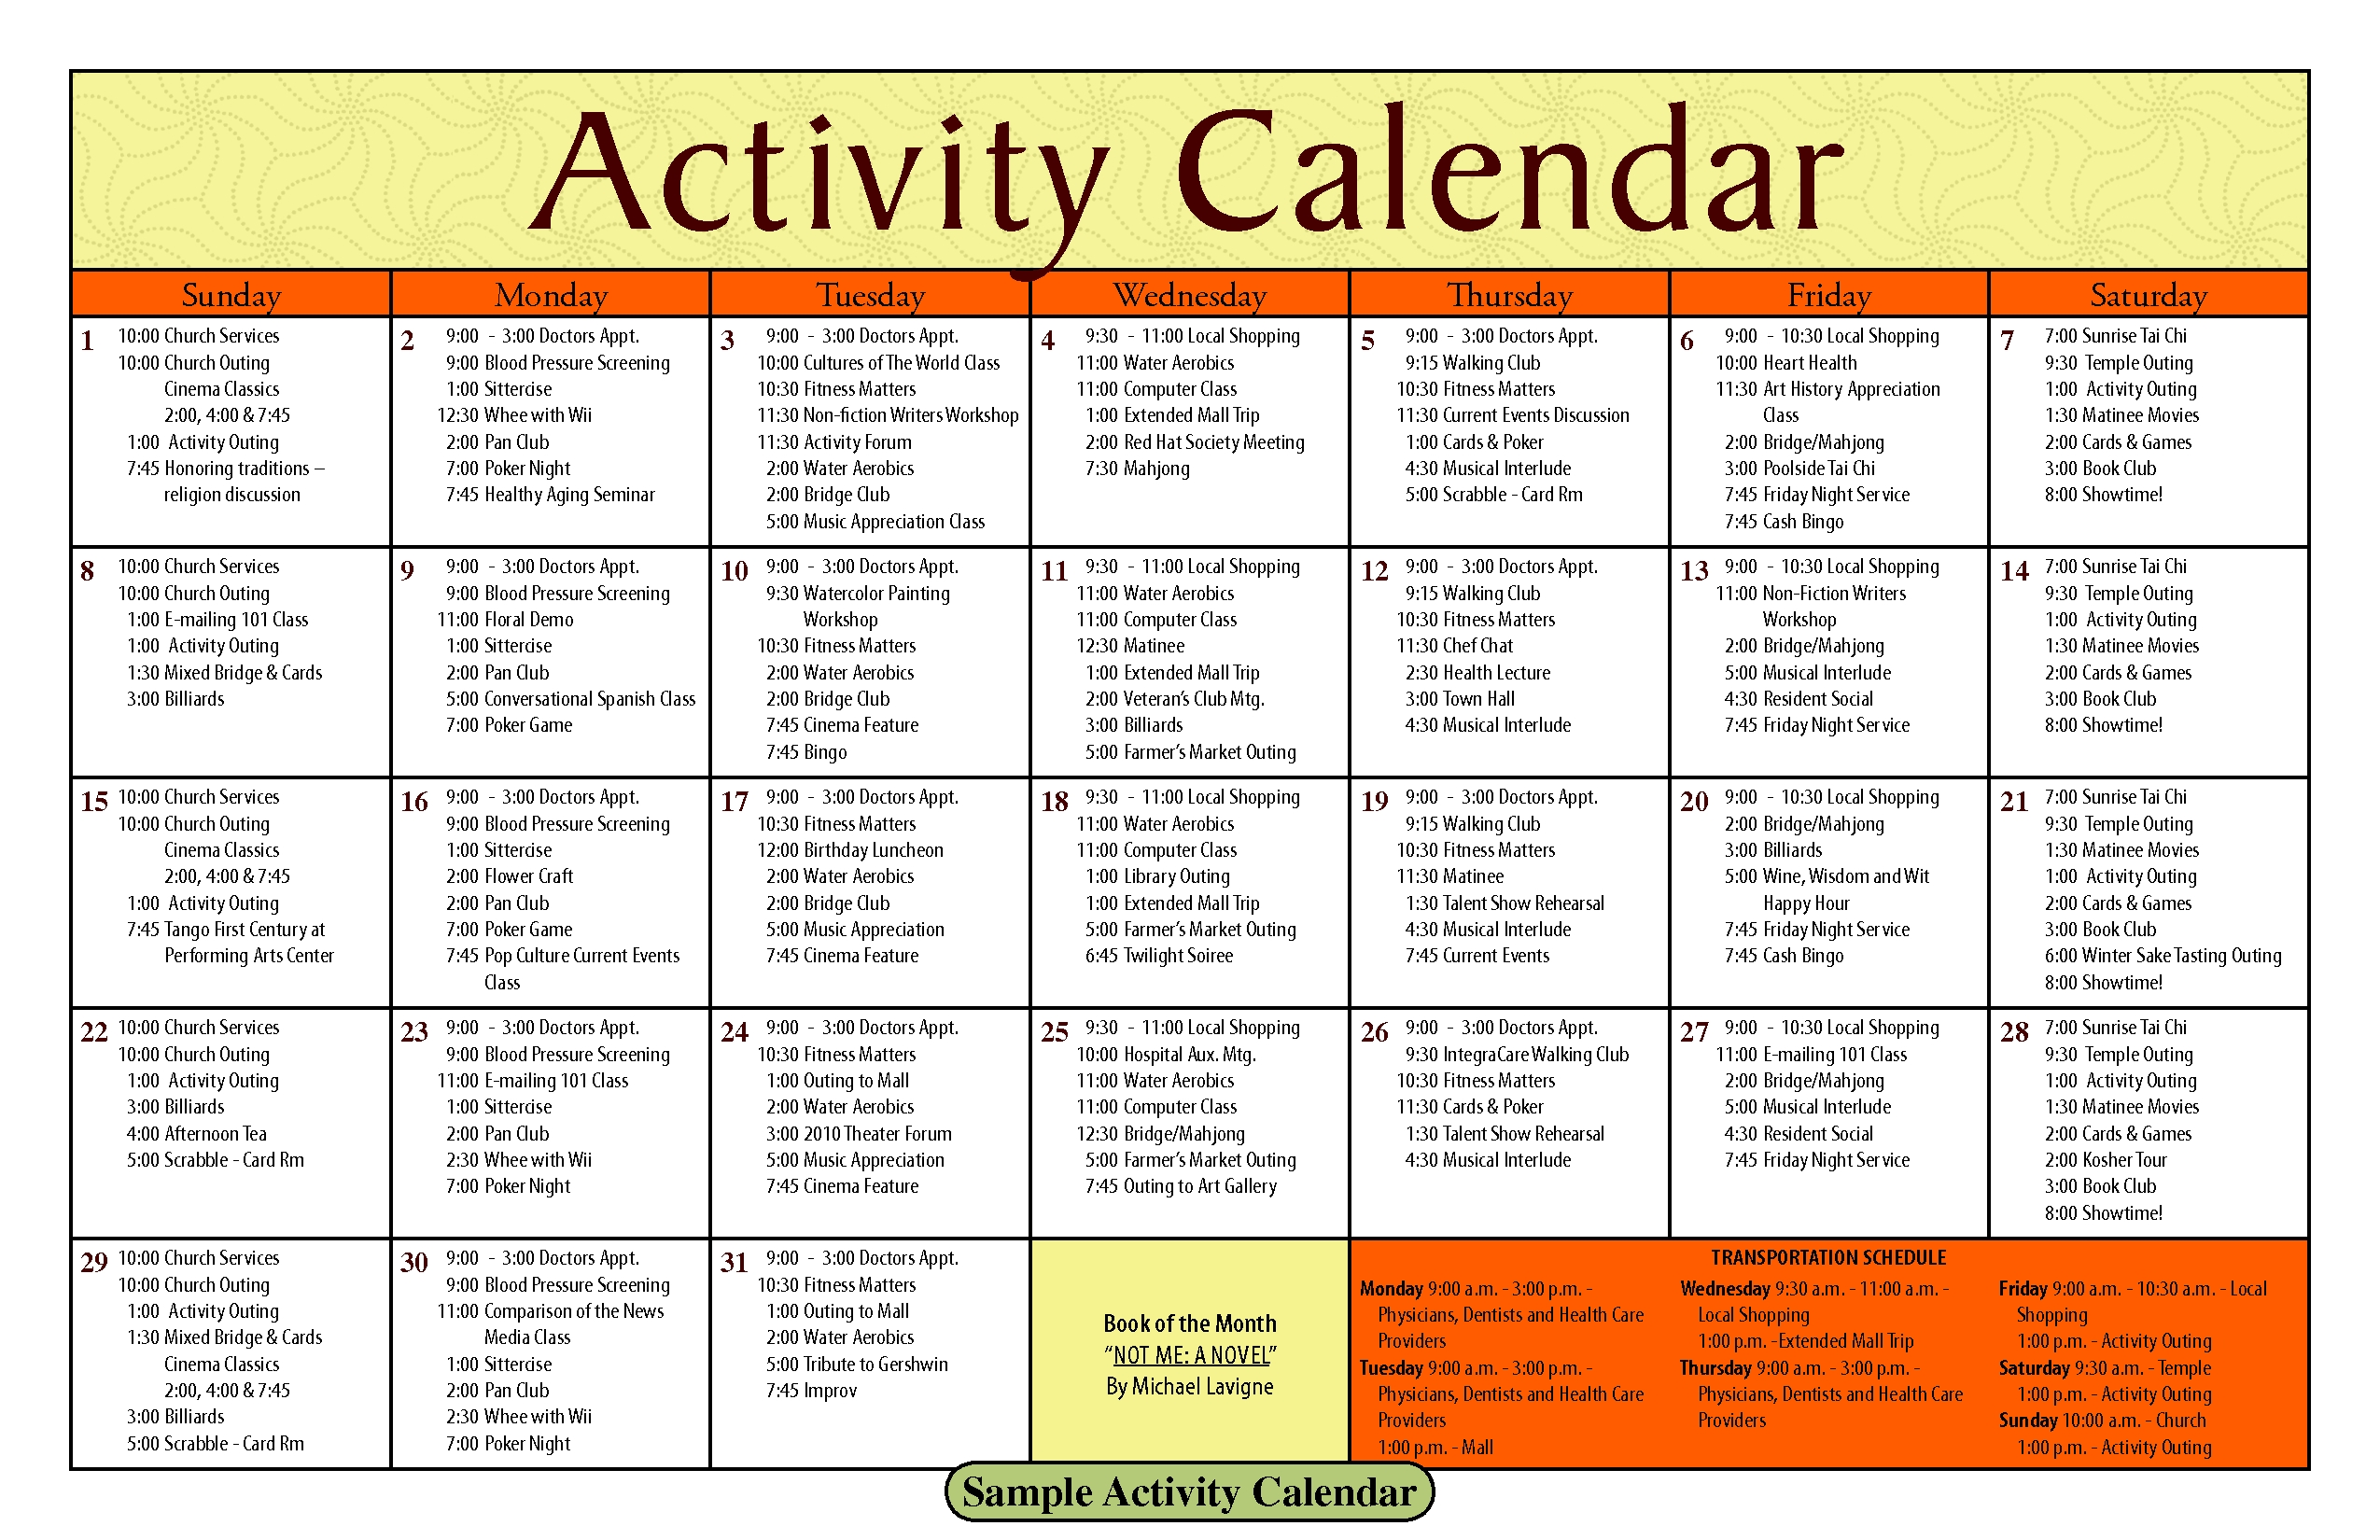 14 Blank Activity Calendar Template Images - Printable Blank